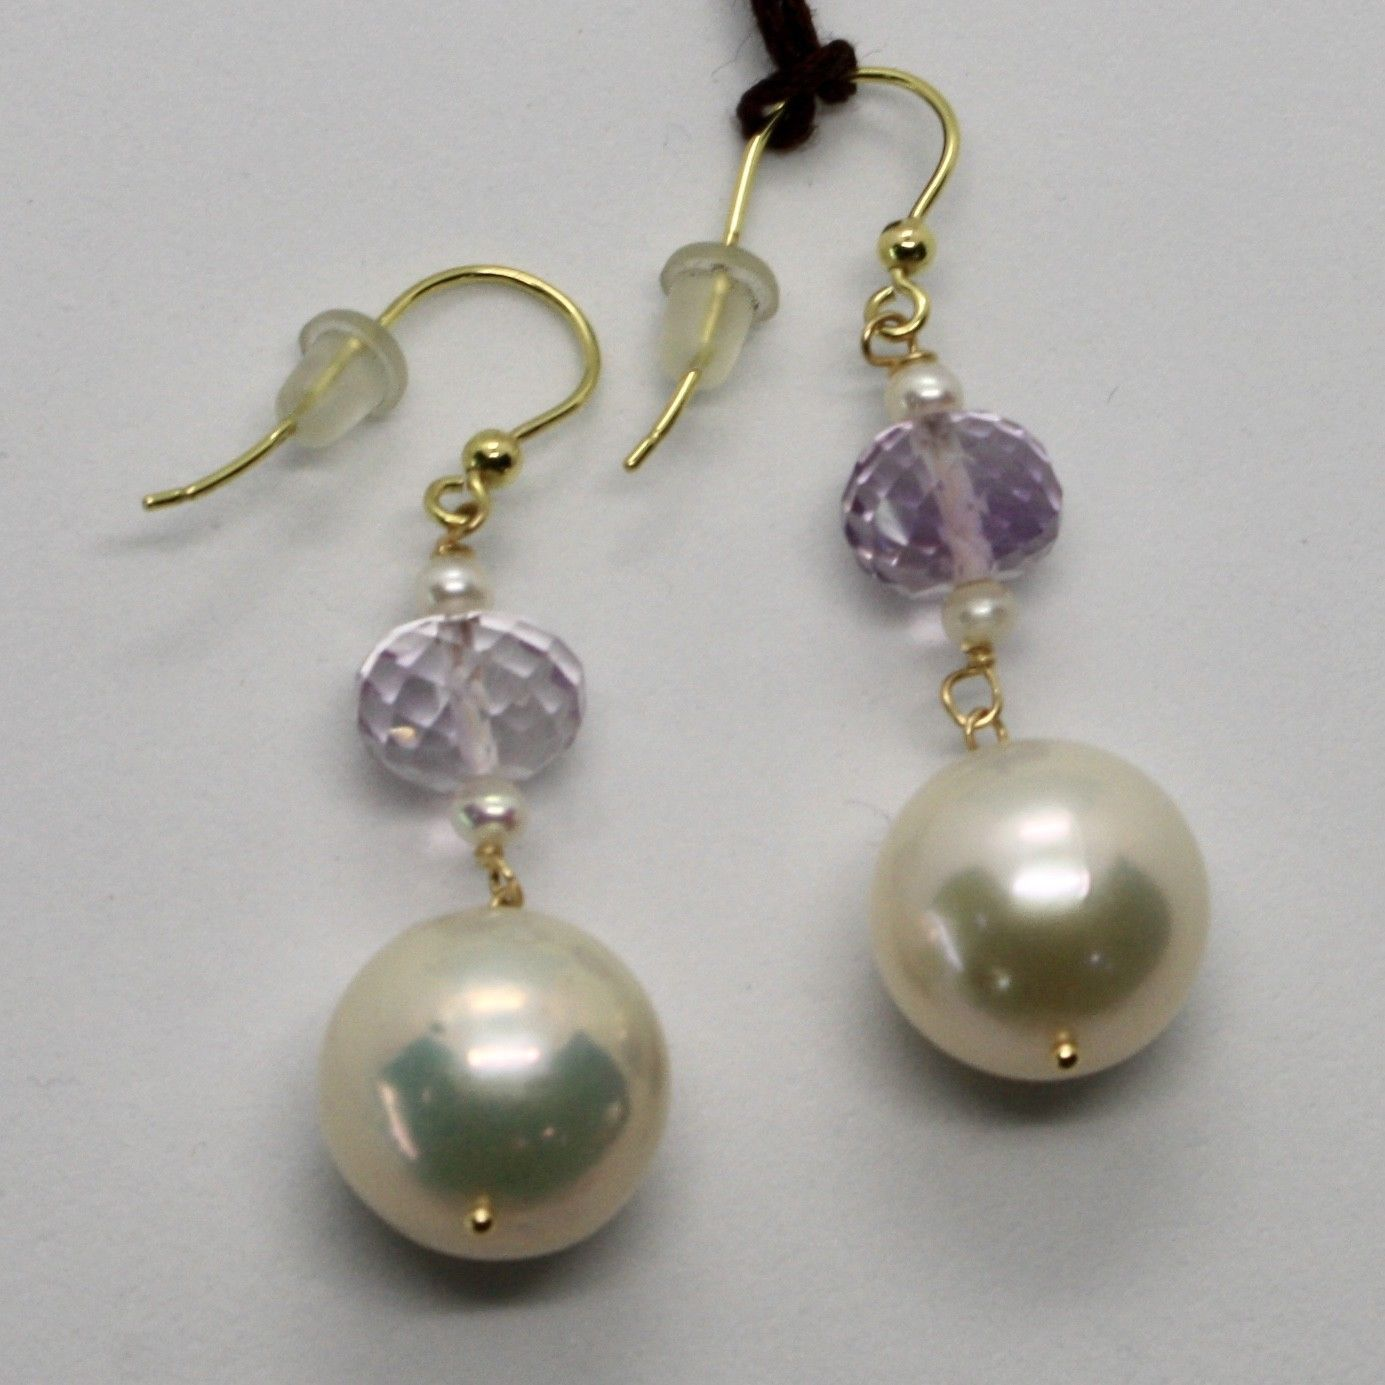 YELLOW GOLD EARRINGS 18KT 750 PEARLS FRESH WATER AND AMETHYST PINK MADE IN ITALY